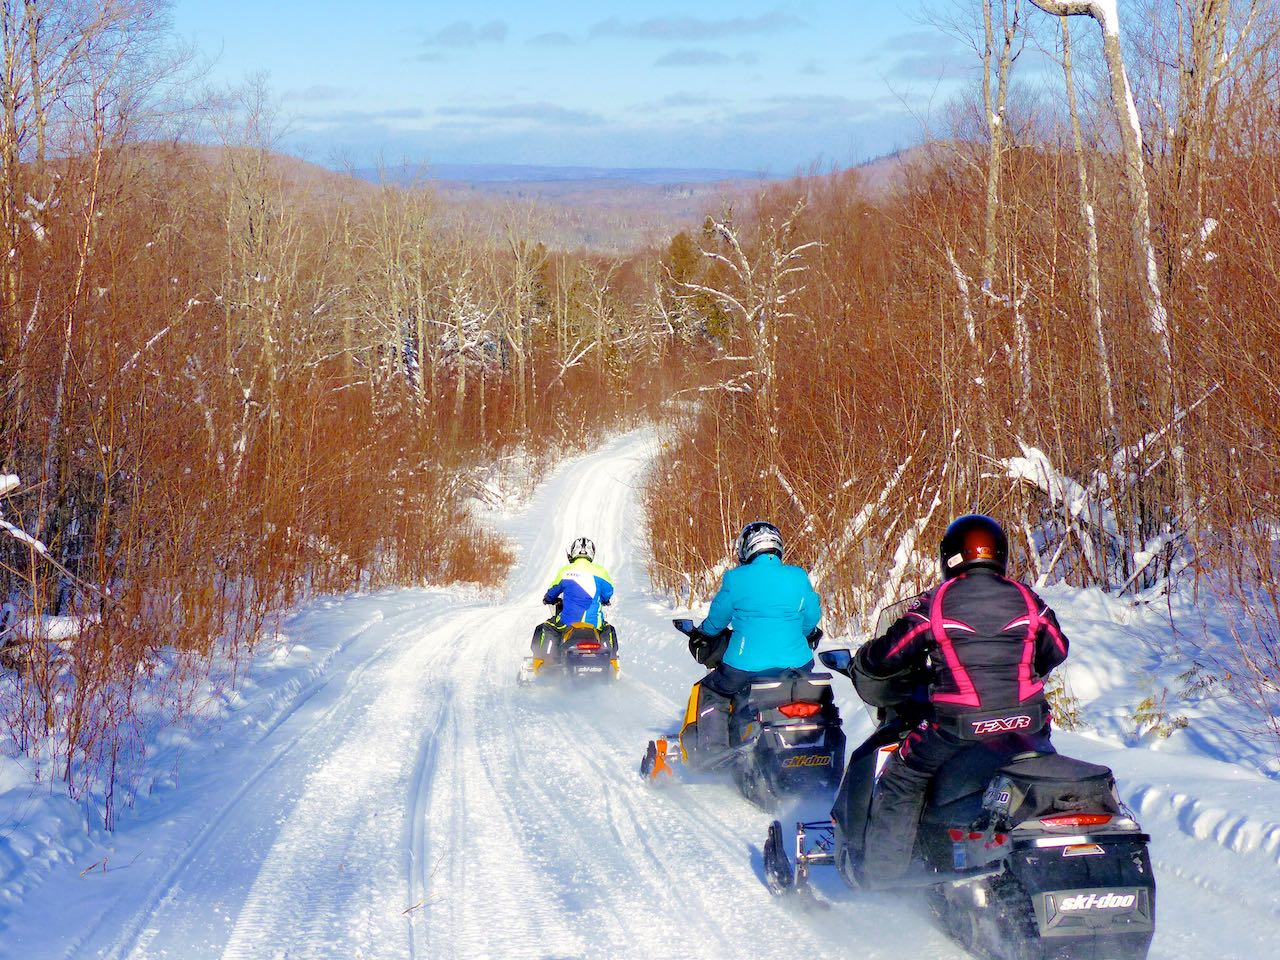 Snowmobilers Quebec trail riding in Laurentian mountains